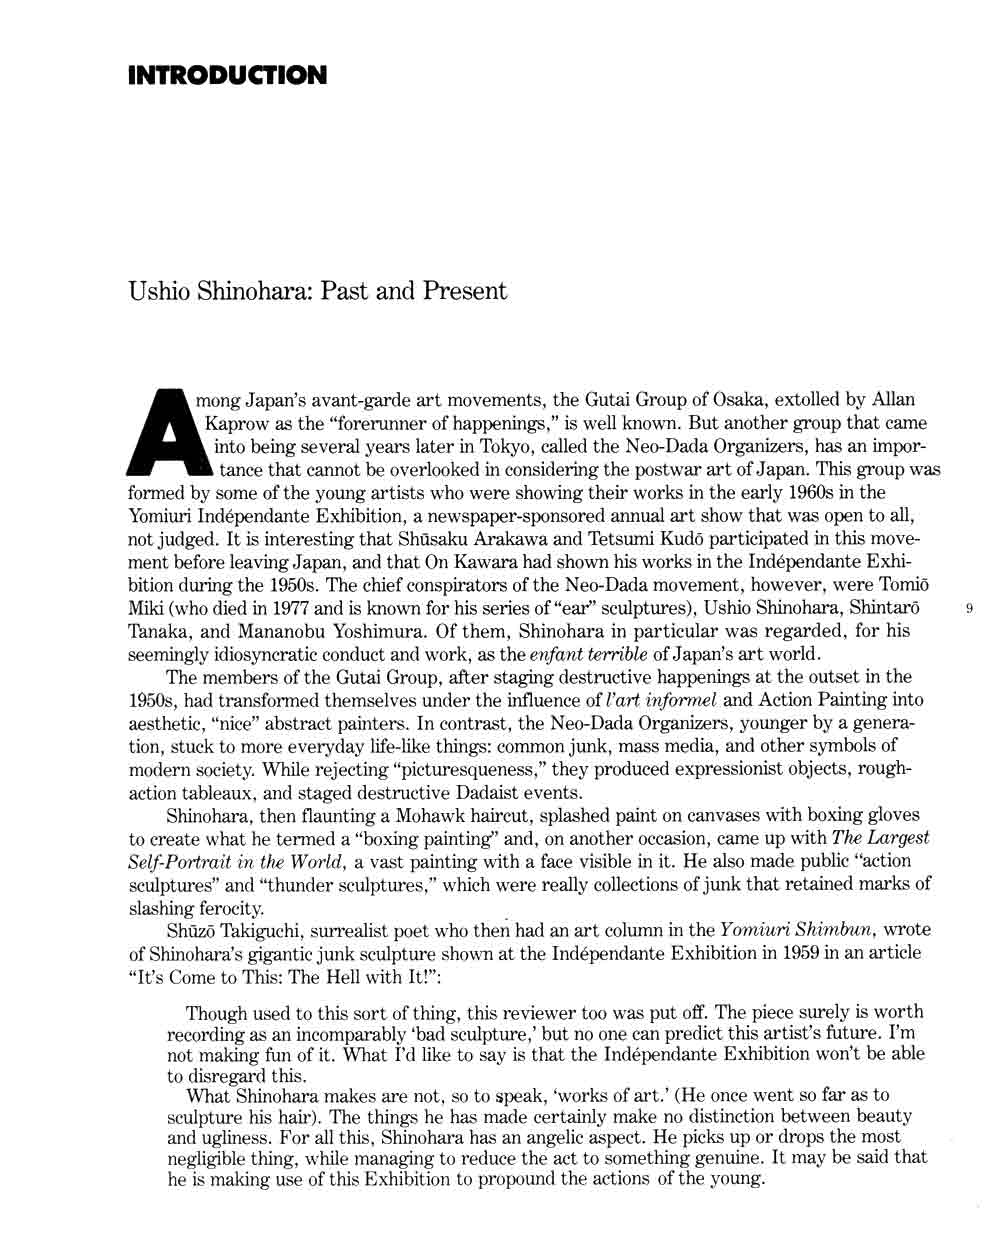 003 In Essay Citation Example Ushio Shinohara Past And Present Pg 1 Striking Text Parenthetical Apa Multiple Authors Website Full